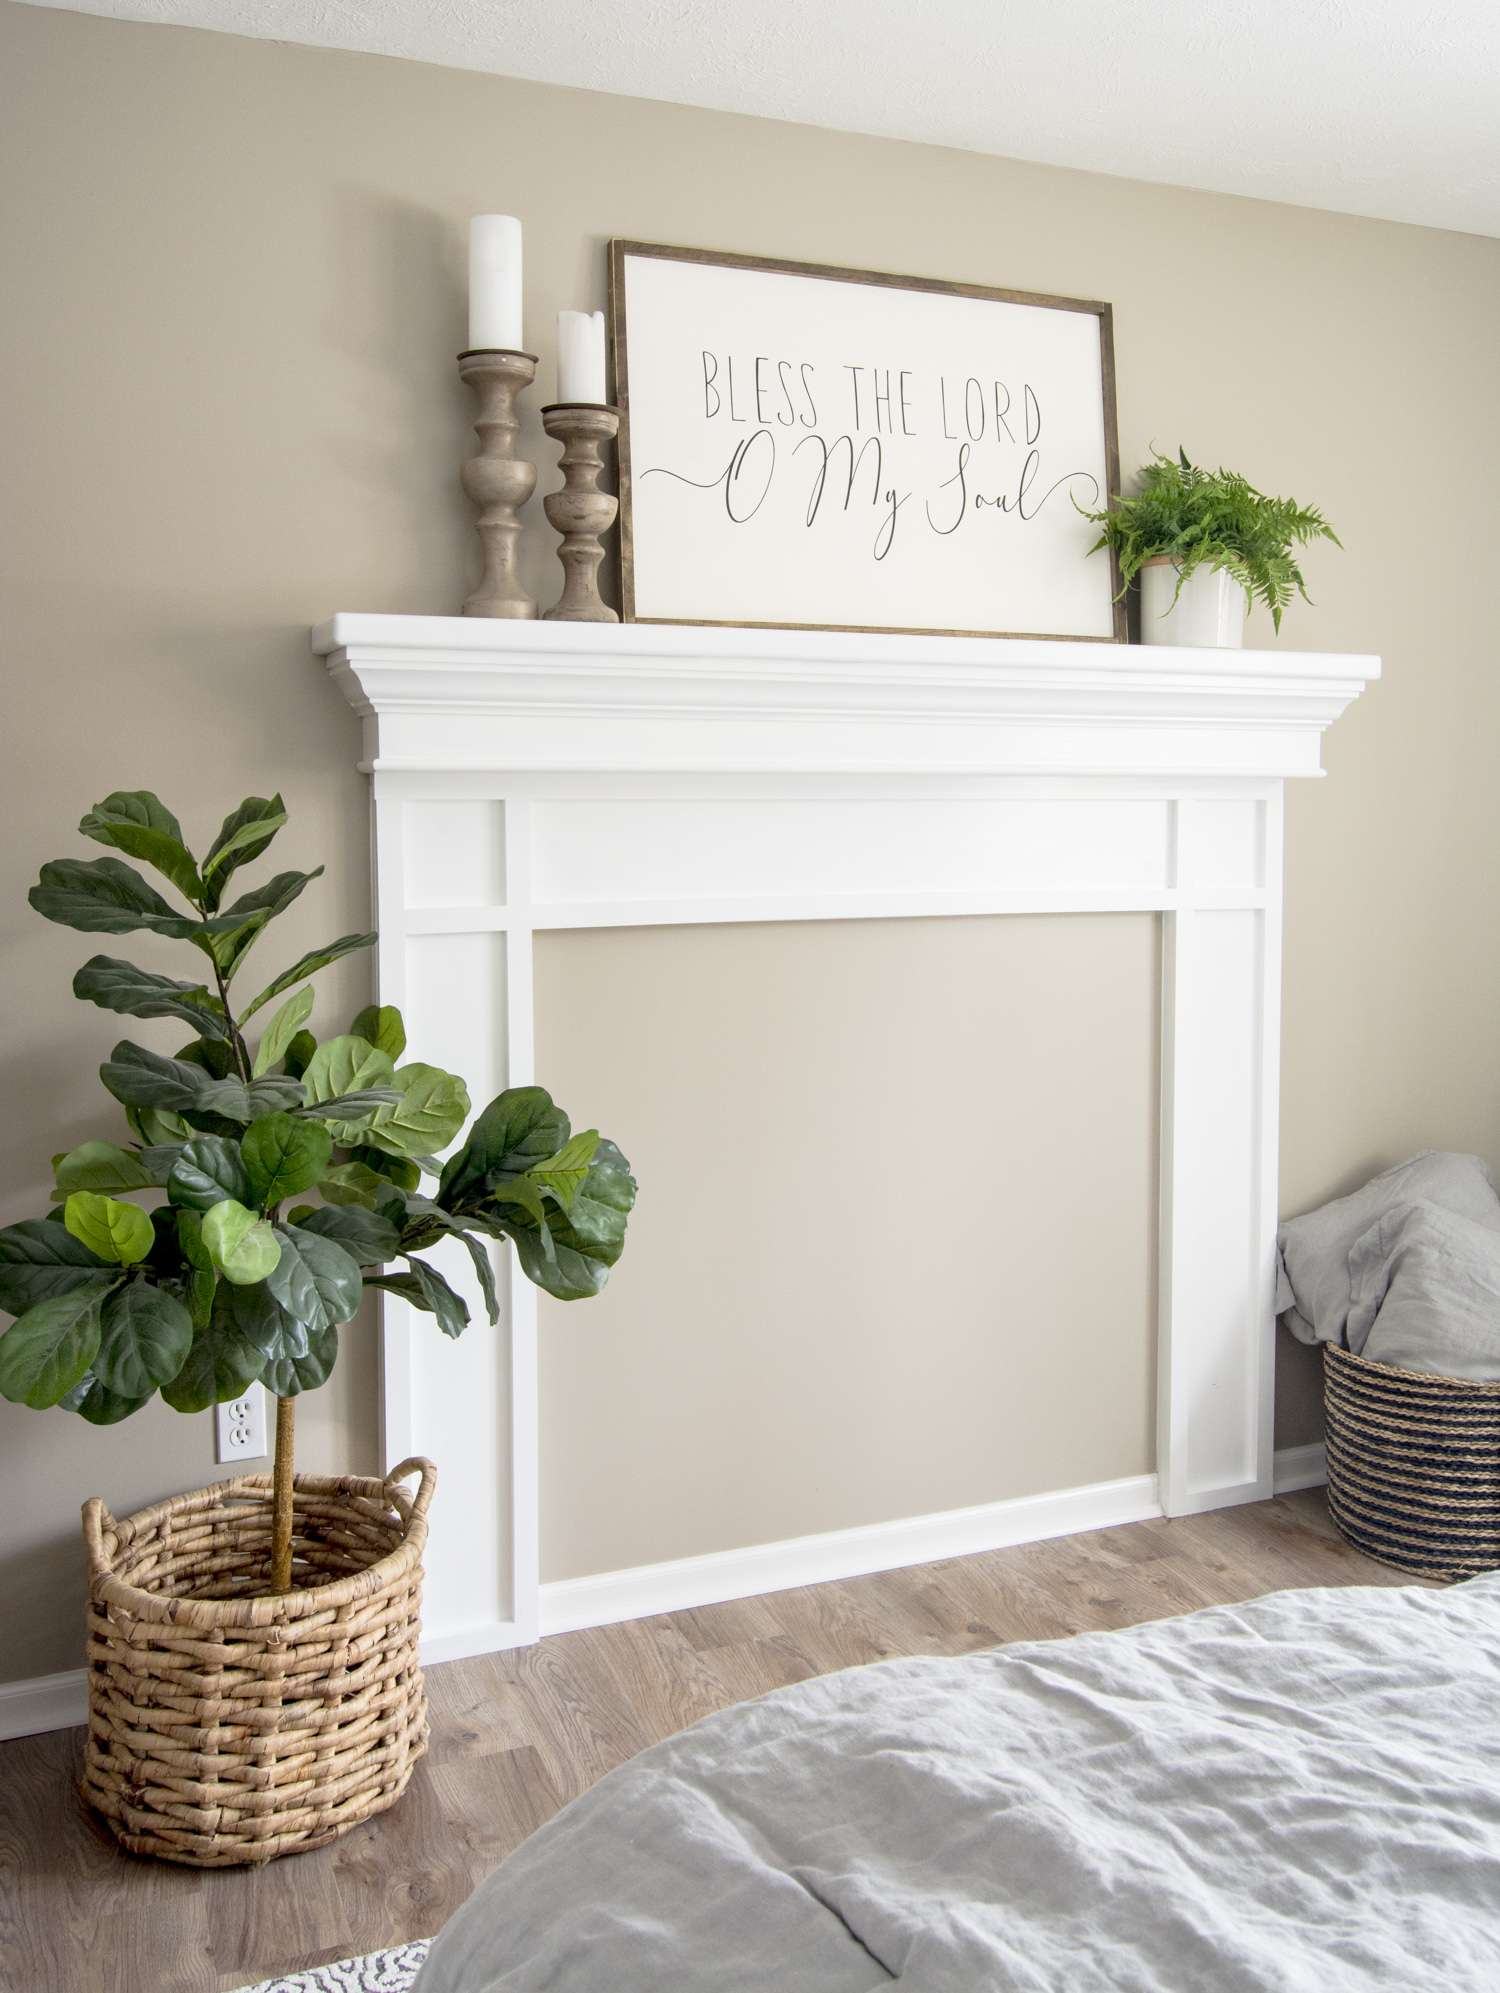 Styled fireplace mantel.